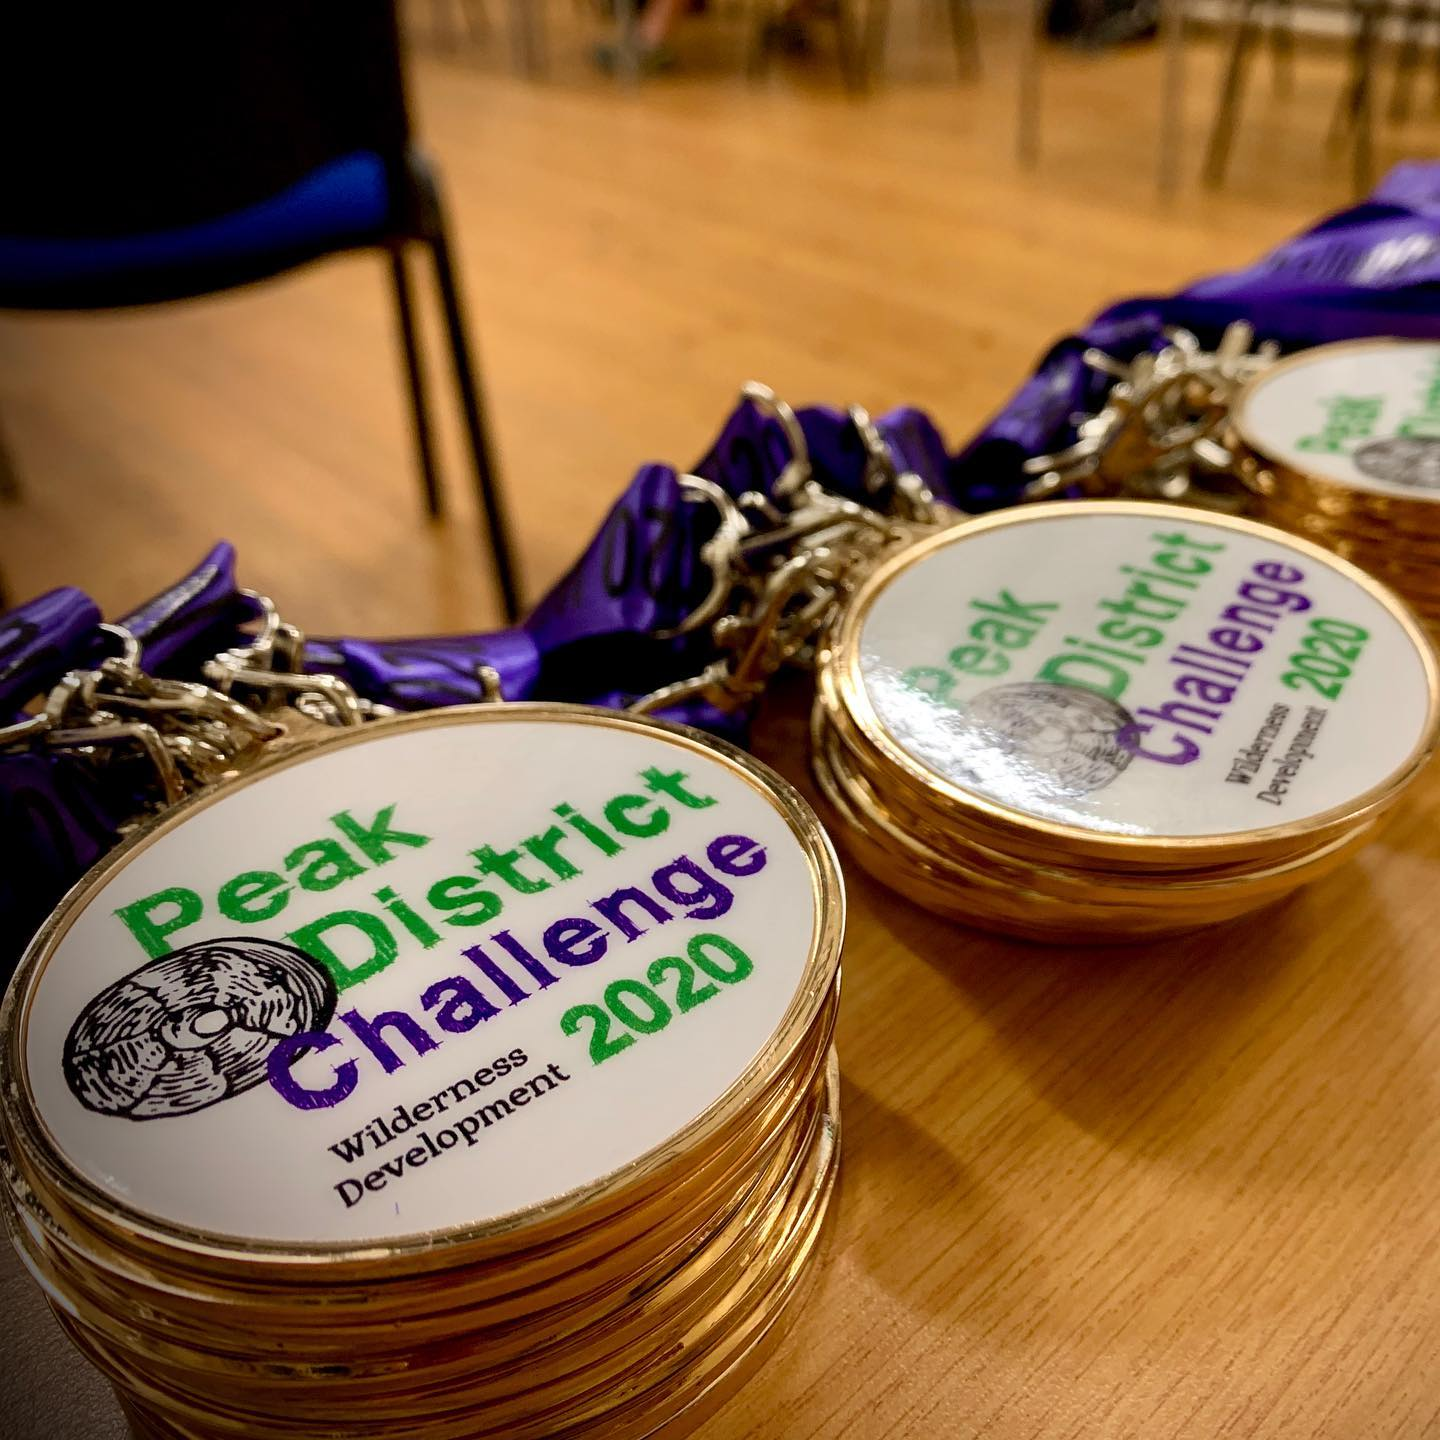 Our first wave of challengers have left and we're getting everyone's medals ready for tomorrow 🏅⛰🏅